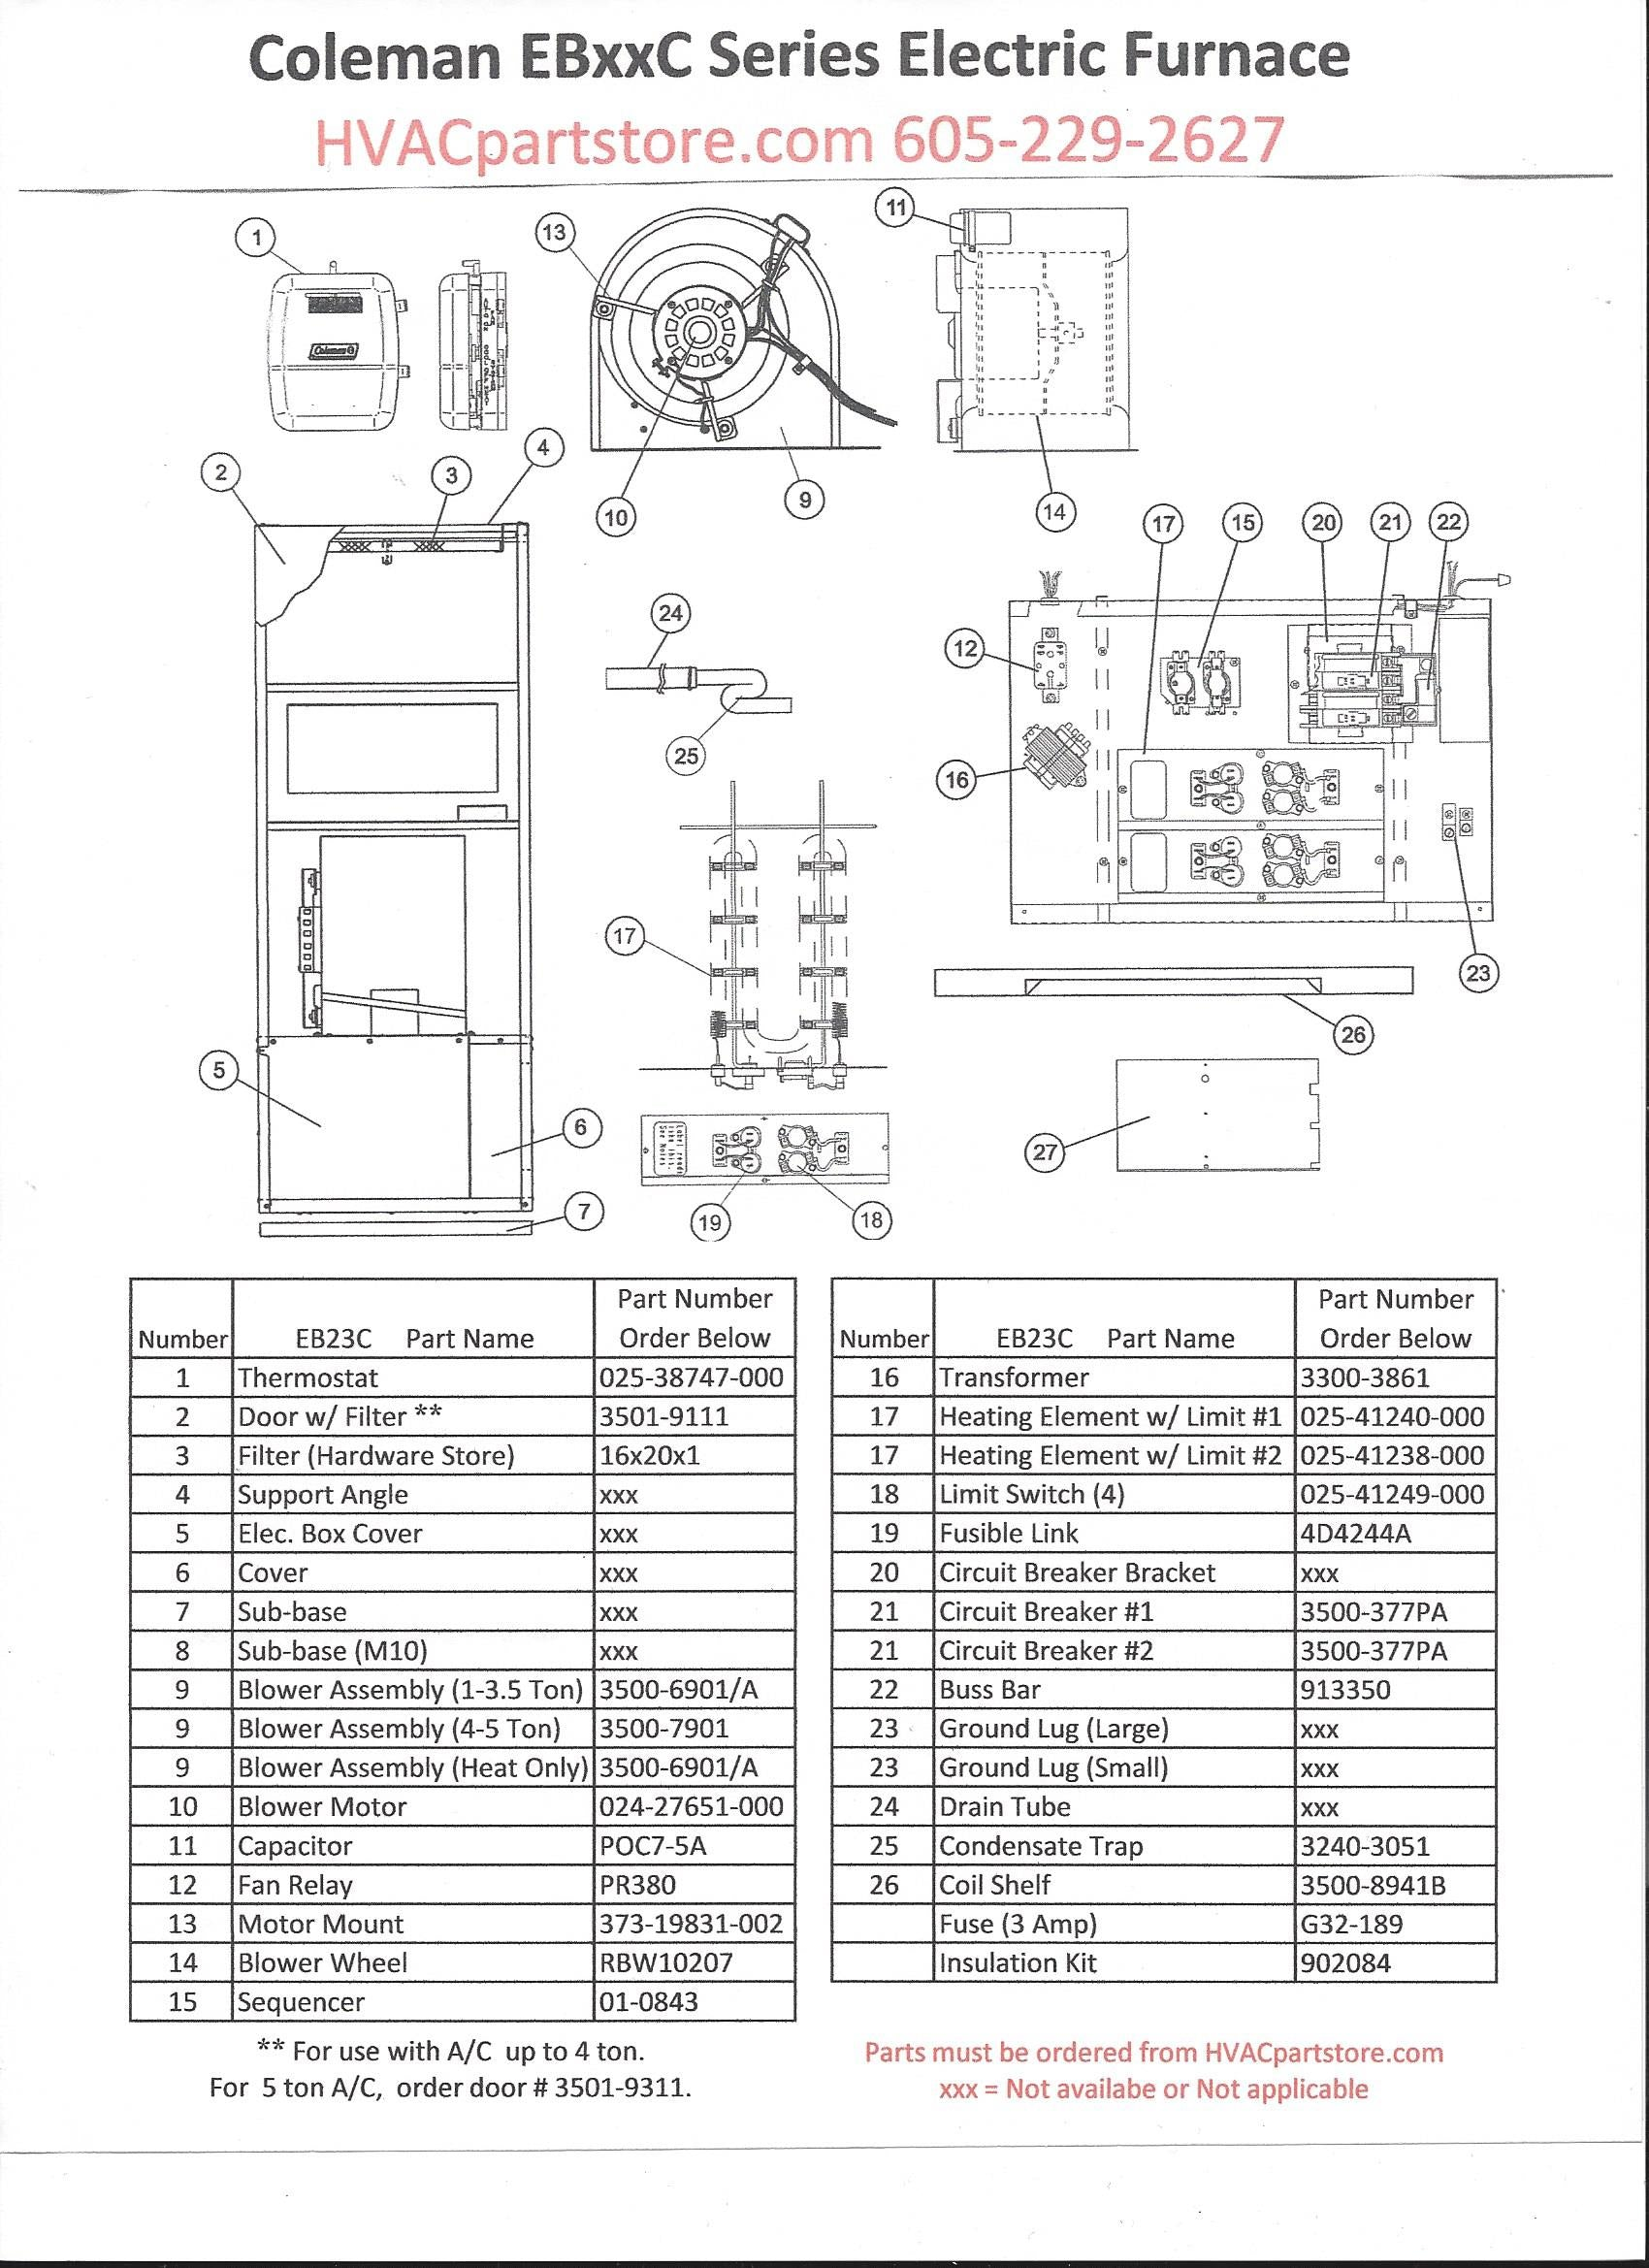 EB23C Coleman Electric Furnace Parts